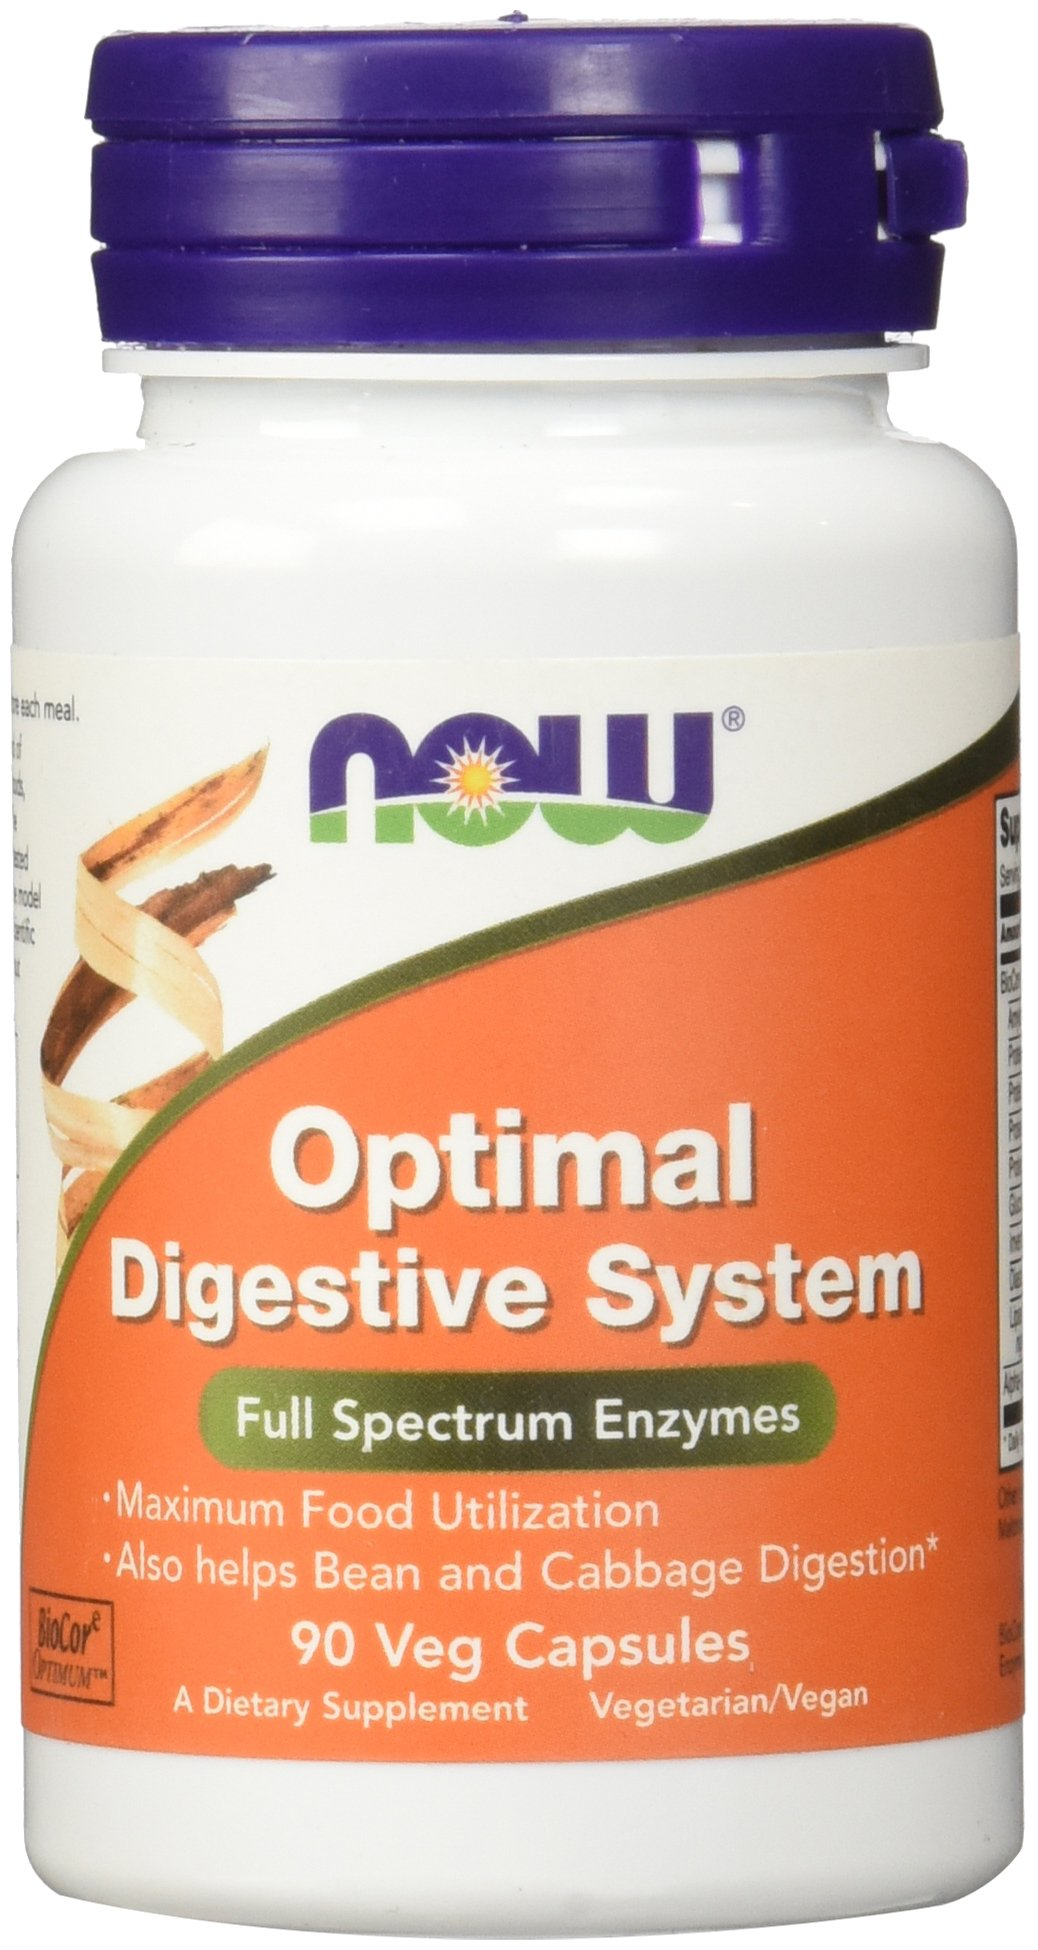 Now Supplements, Optimal Digestive System, Full Spectrum Enzymes, 90 Veg Capsules by NOW Foods